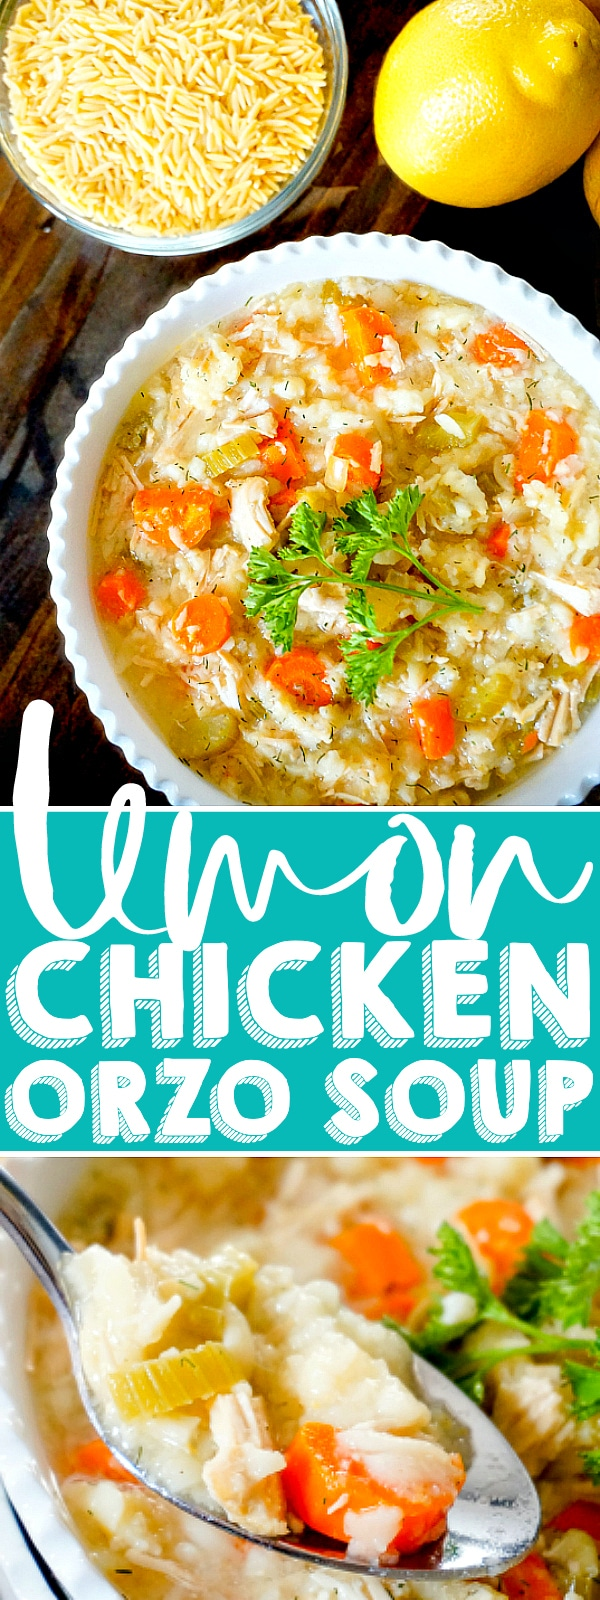 This light and refreshing slow cooker Lemon Chicken Orzo Soup recipe is a copycat Panera soup recipe that is delicious all year long and serves as a great substitute to your traditional chicken noodle soup!   THE LOVE NERDS #slowcookersoup #lemonchickenrecipe #souprecipe